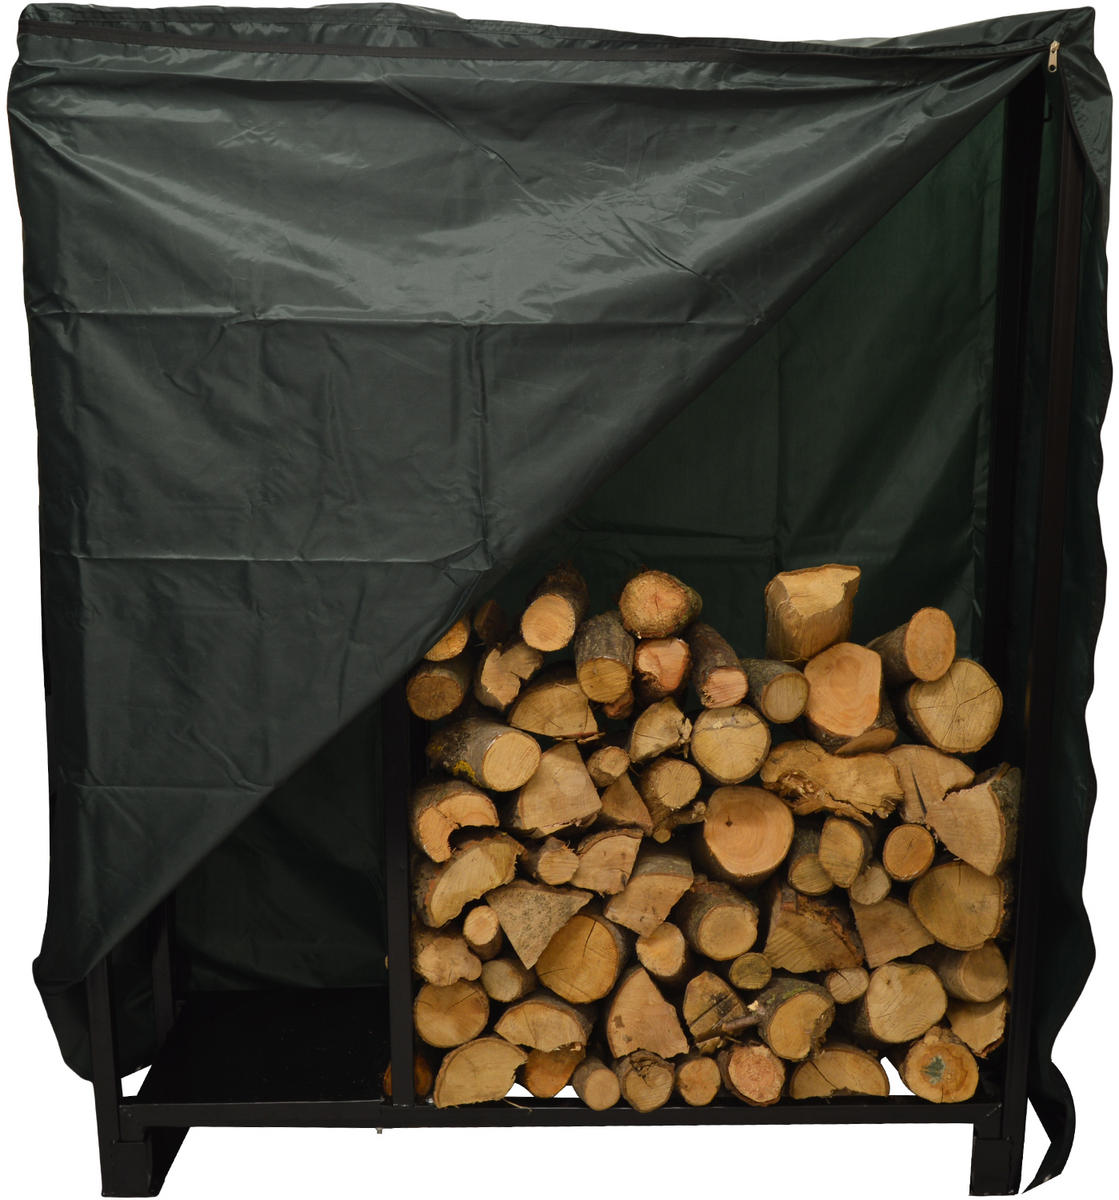 Hausen Outdoor Utility Wood Rack Cover